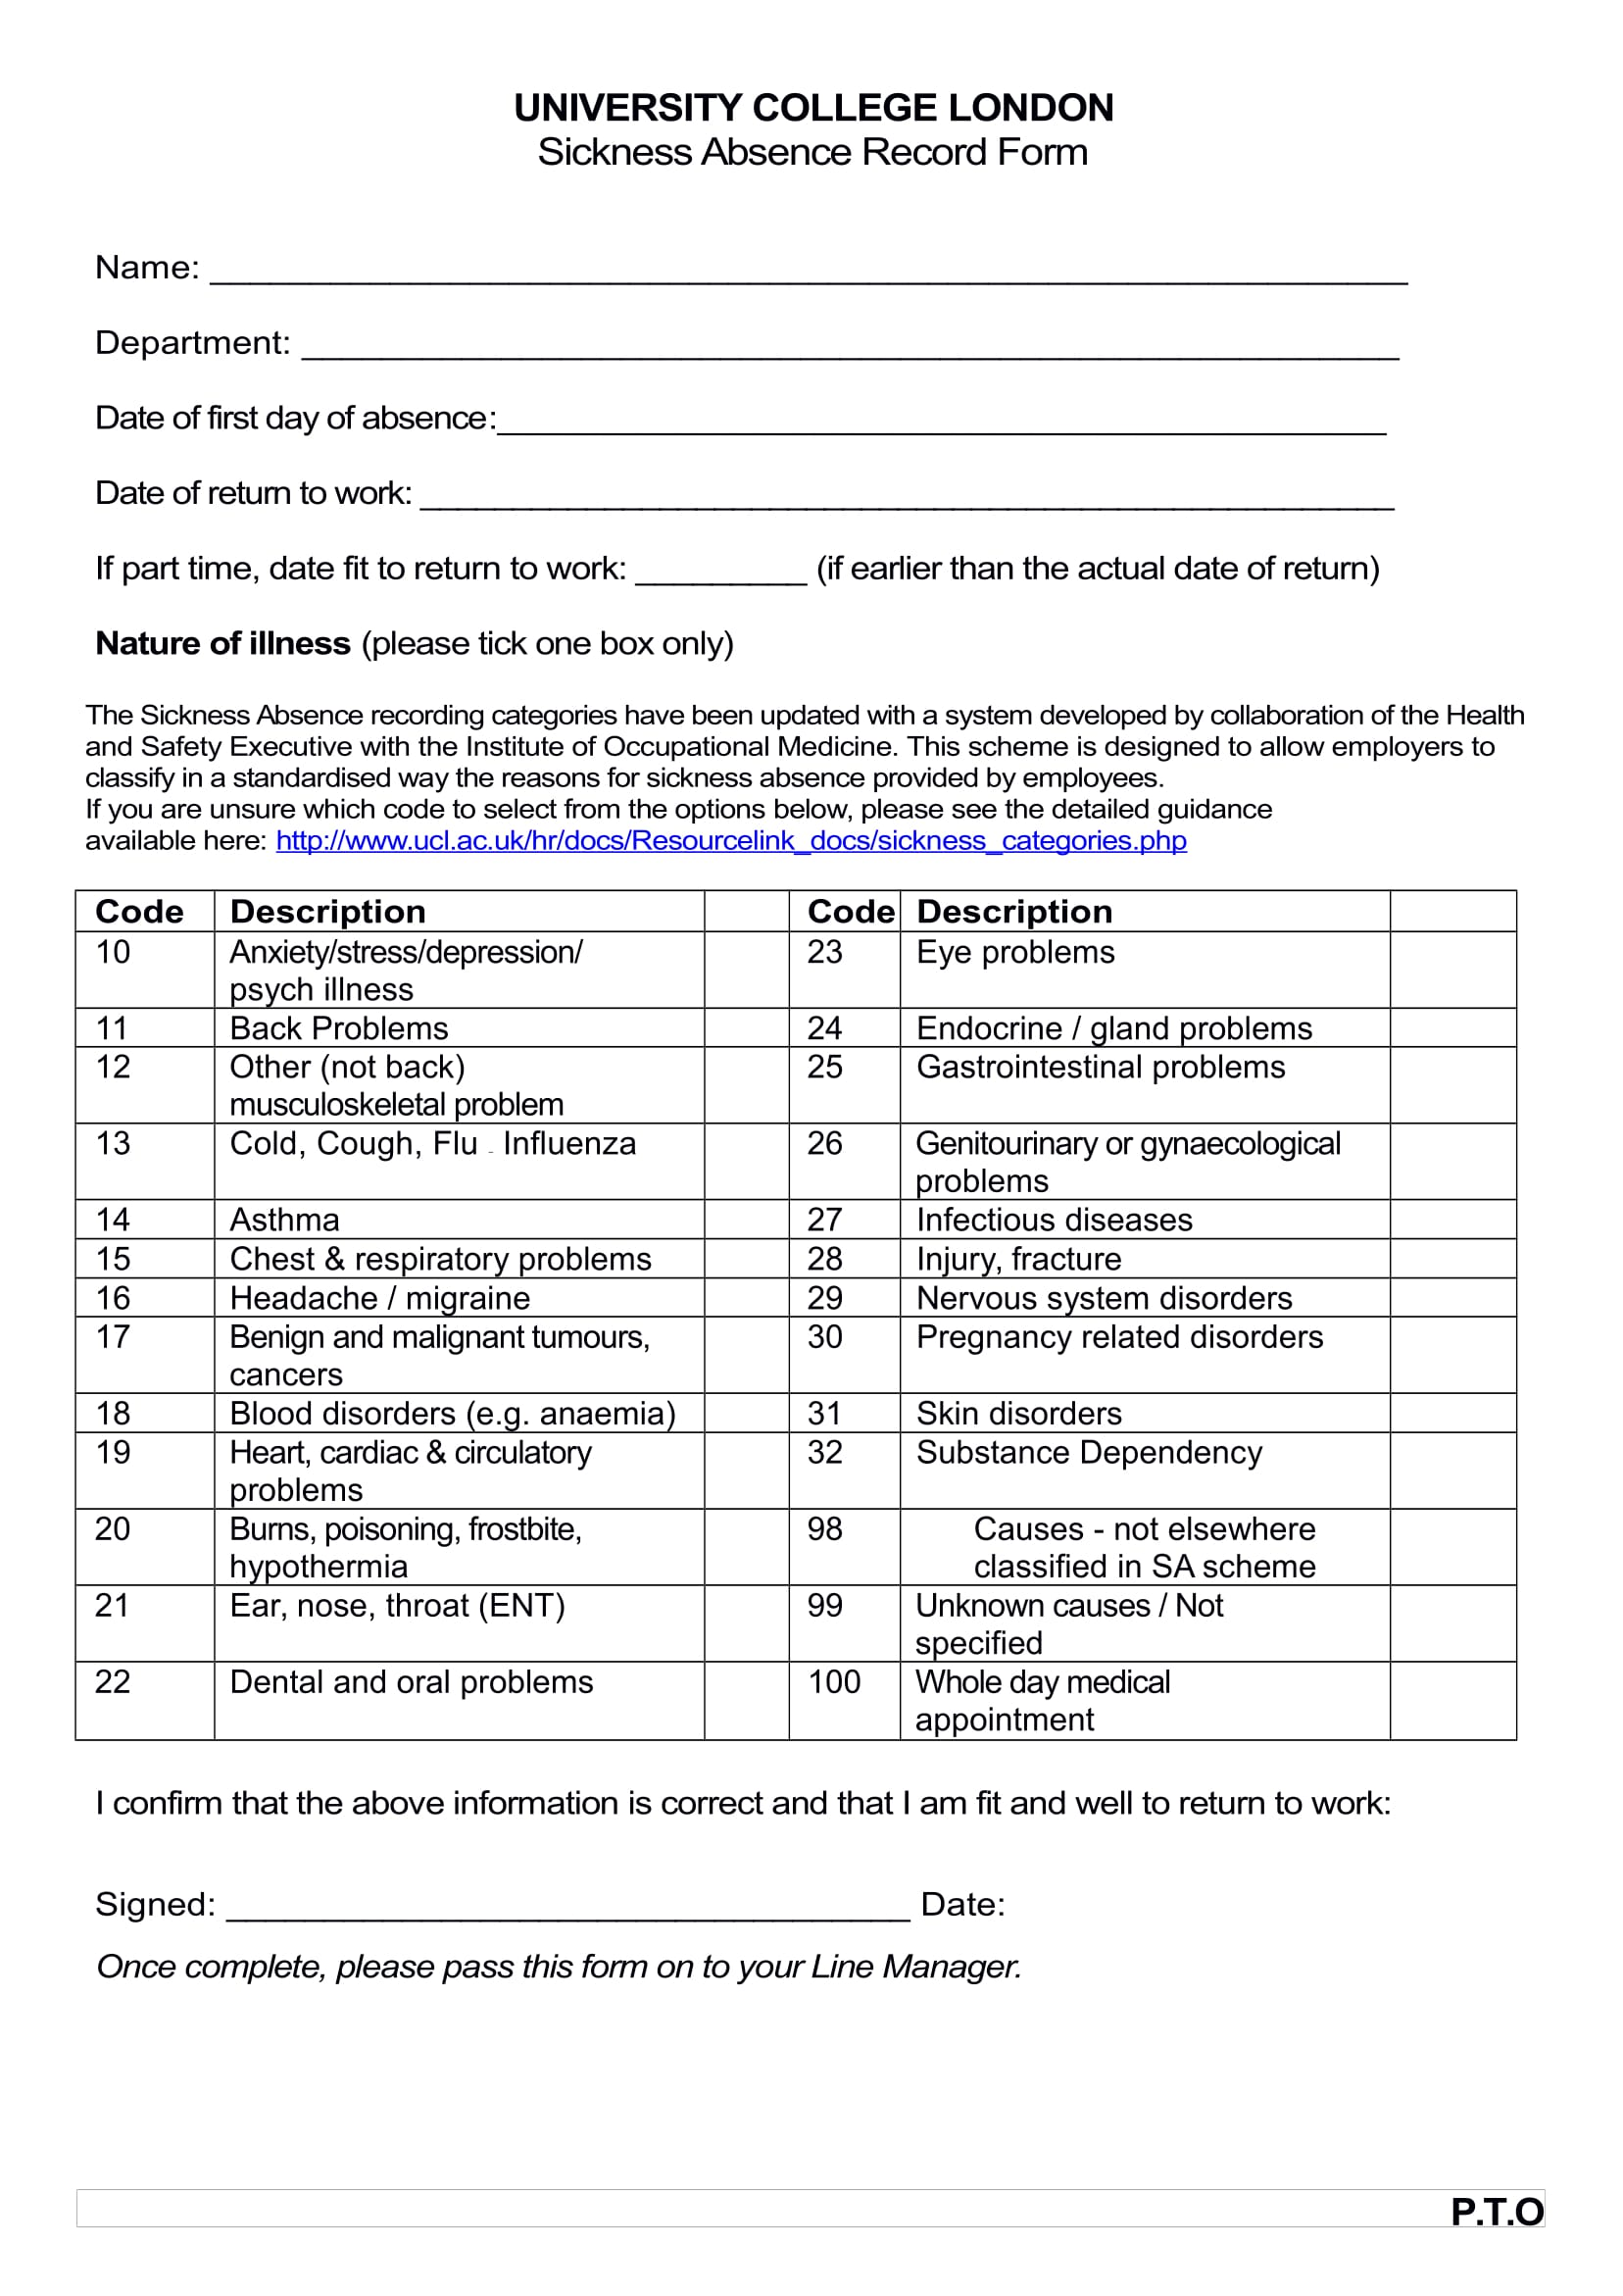 staff sickness absence record form 1